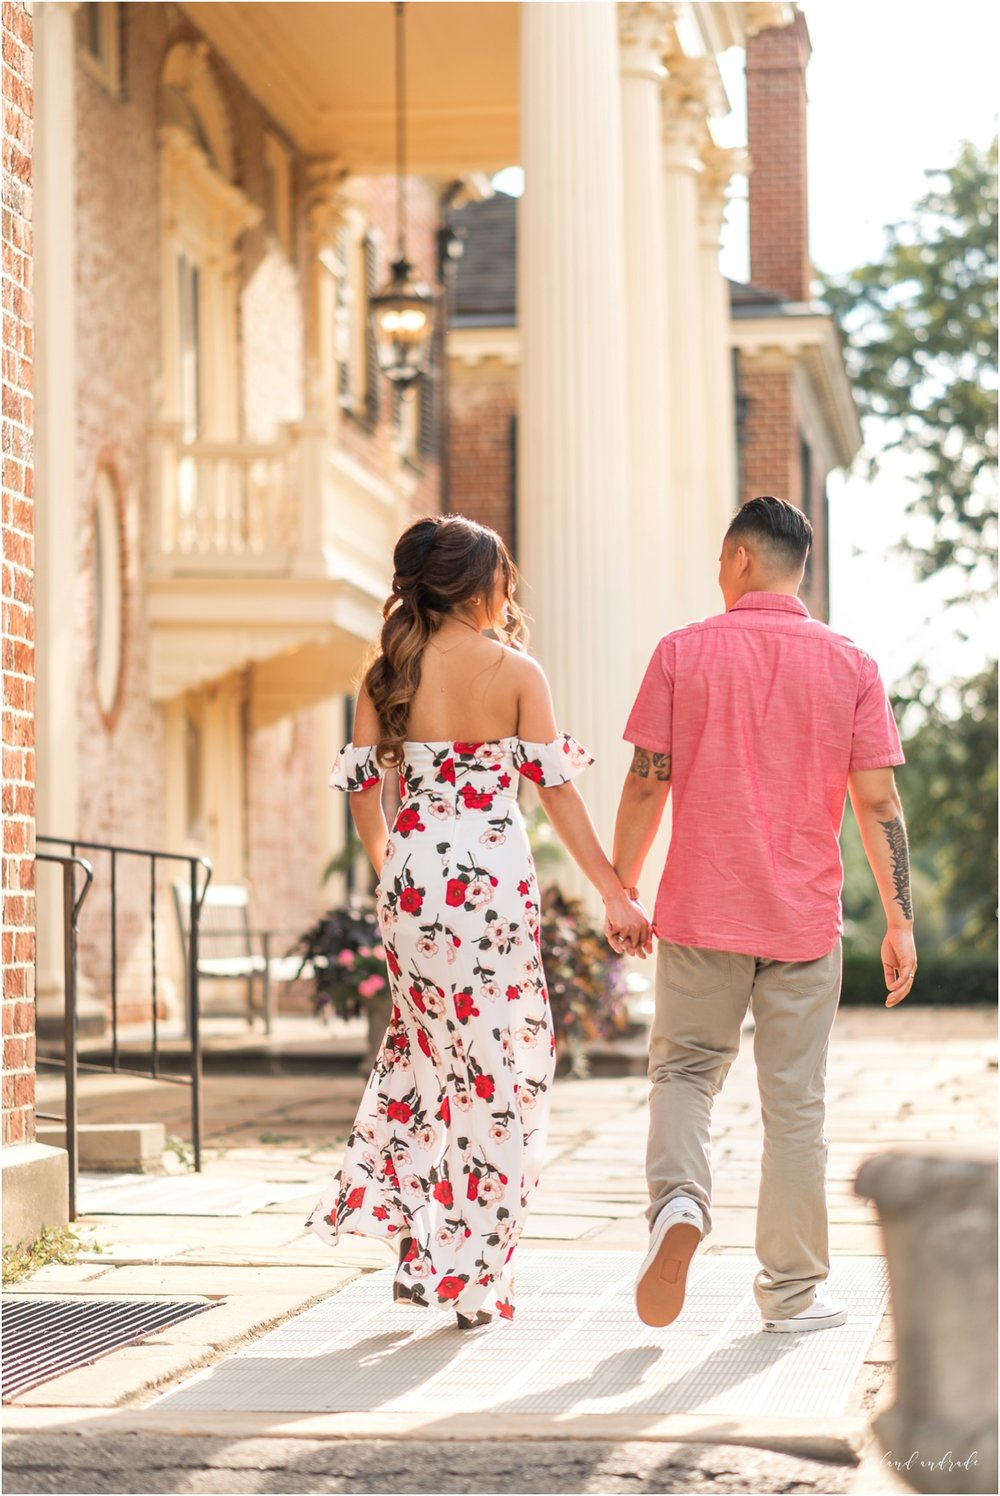 Cantigny Park Engagement Session, Wheaton Illinois Engagement Session, Chicago Wedding Photographer, Naperville Wedding Photographer, Aurora Wedding Photographer_0027.jpg